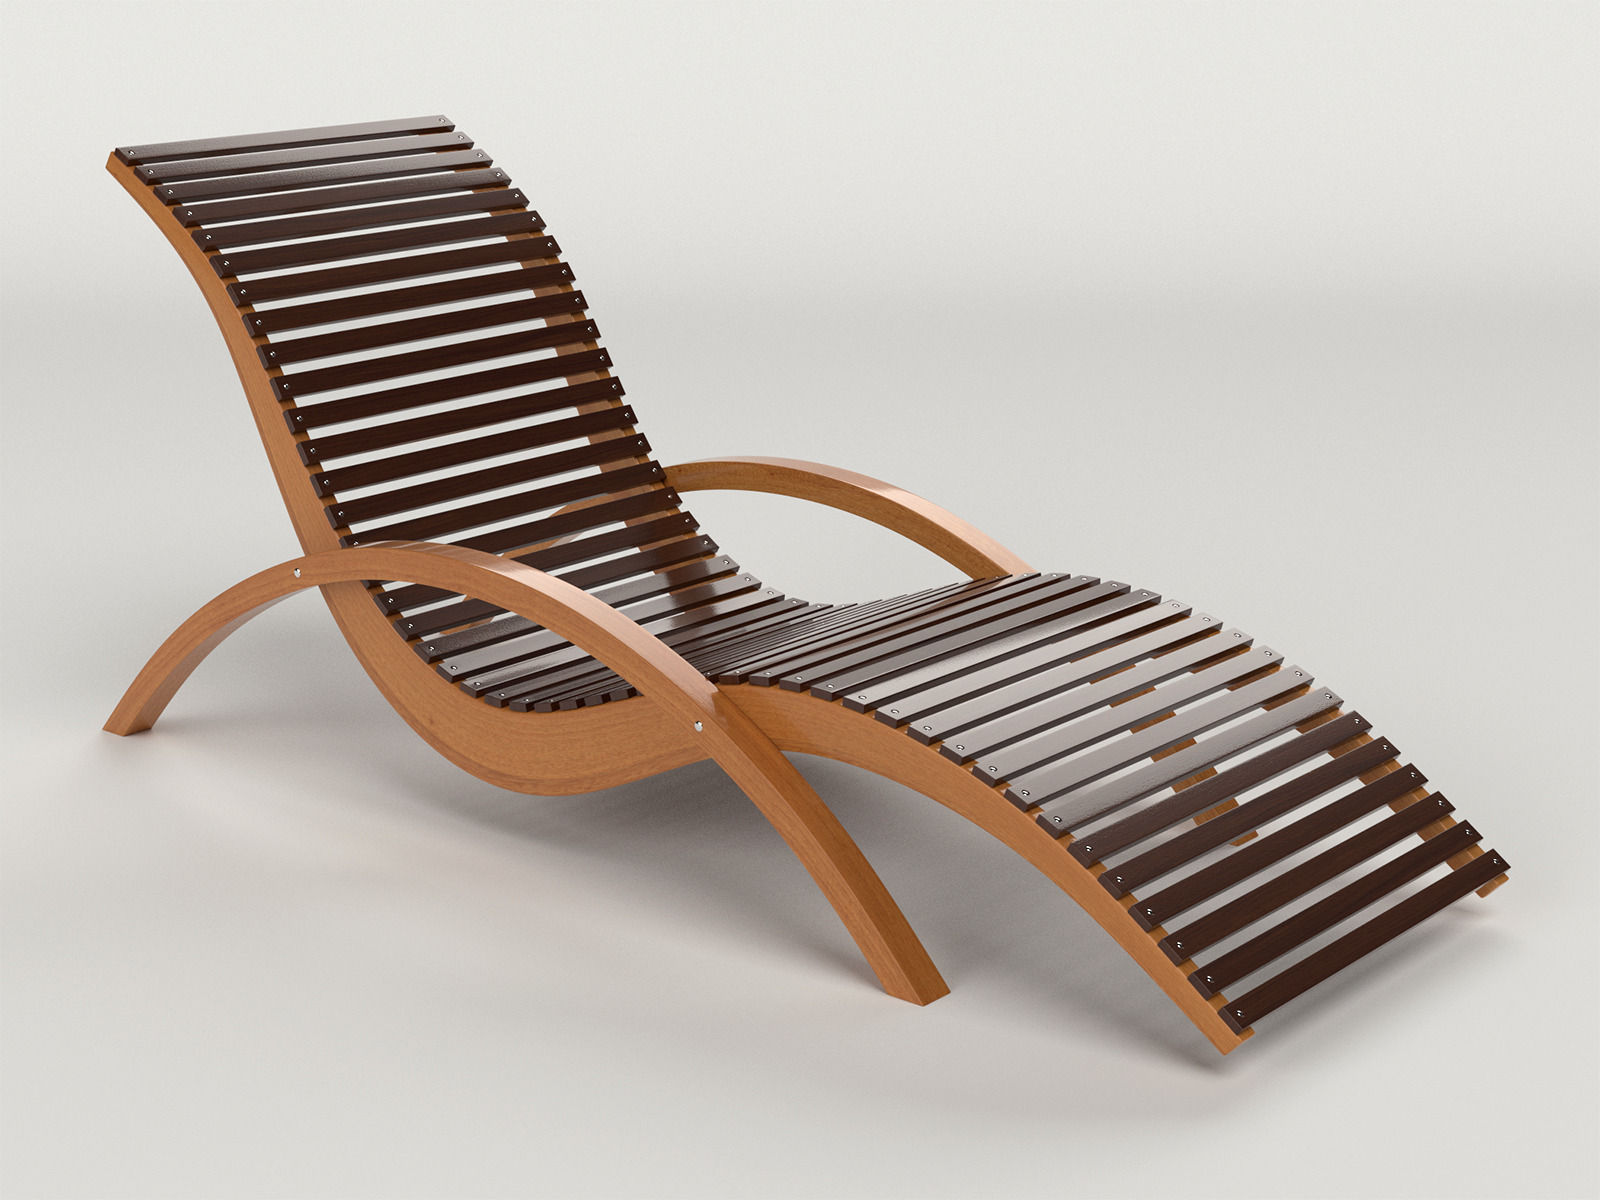 Lounge Chair Outdoor Wood Patio Deck 3d Model Obj Dxf Mtl 1 ...